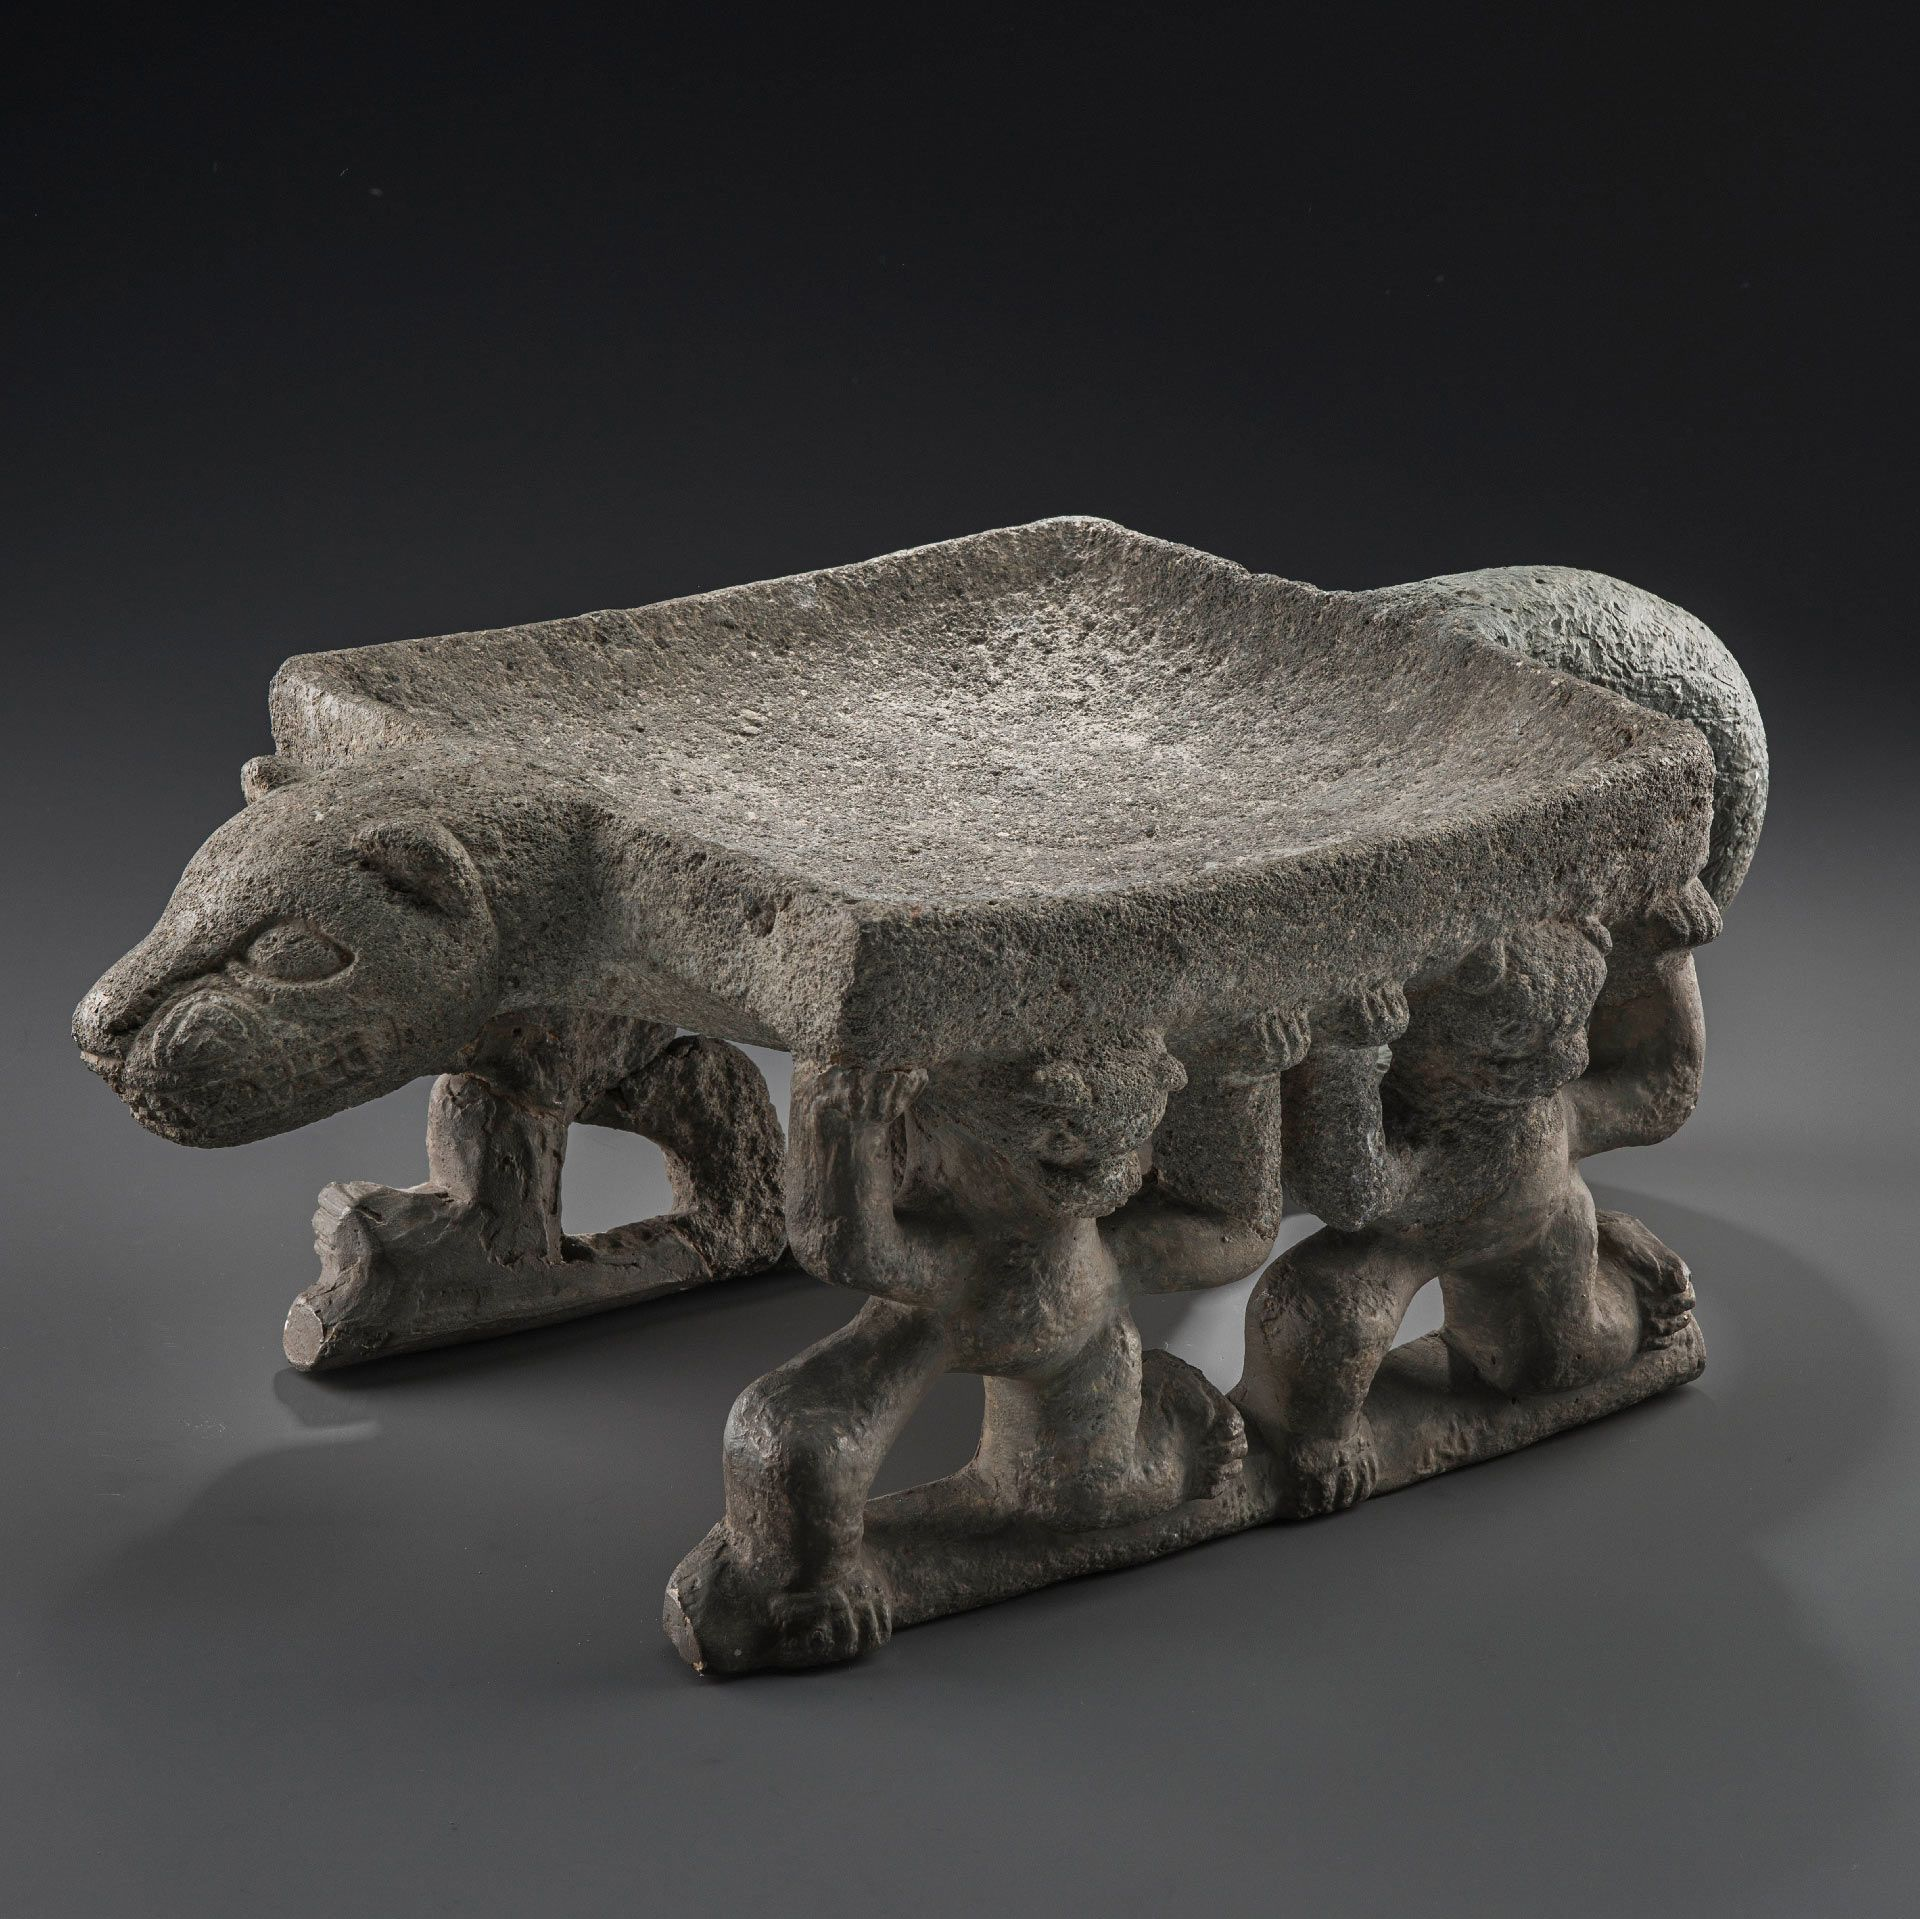 Ceremonial Metate (grinding table): Jaguar